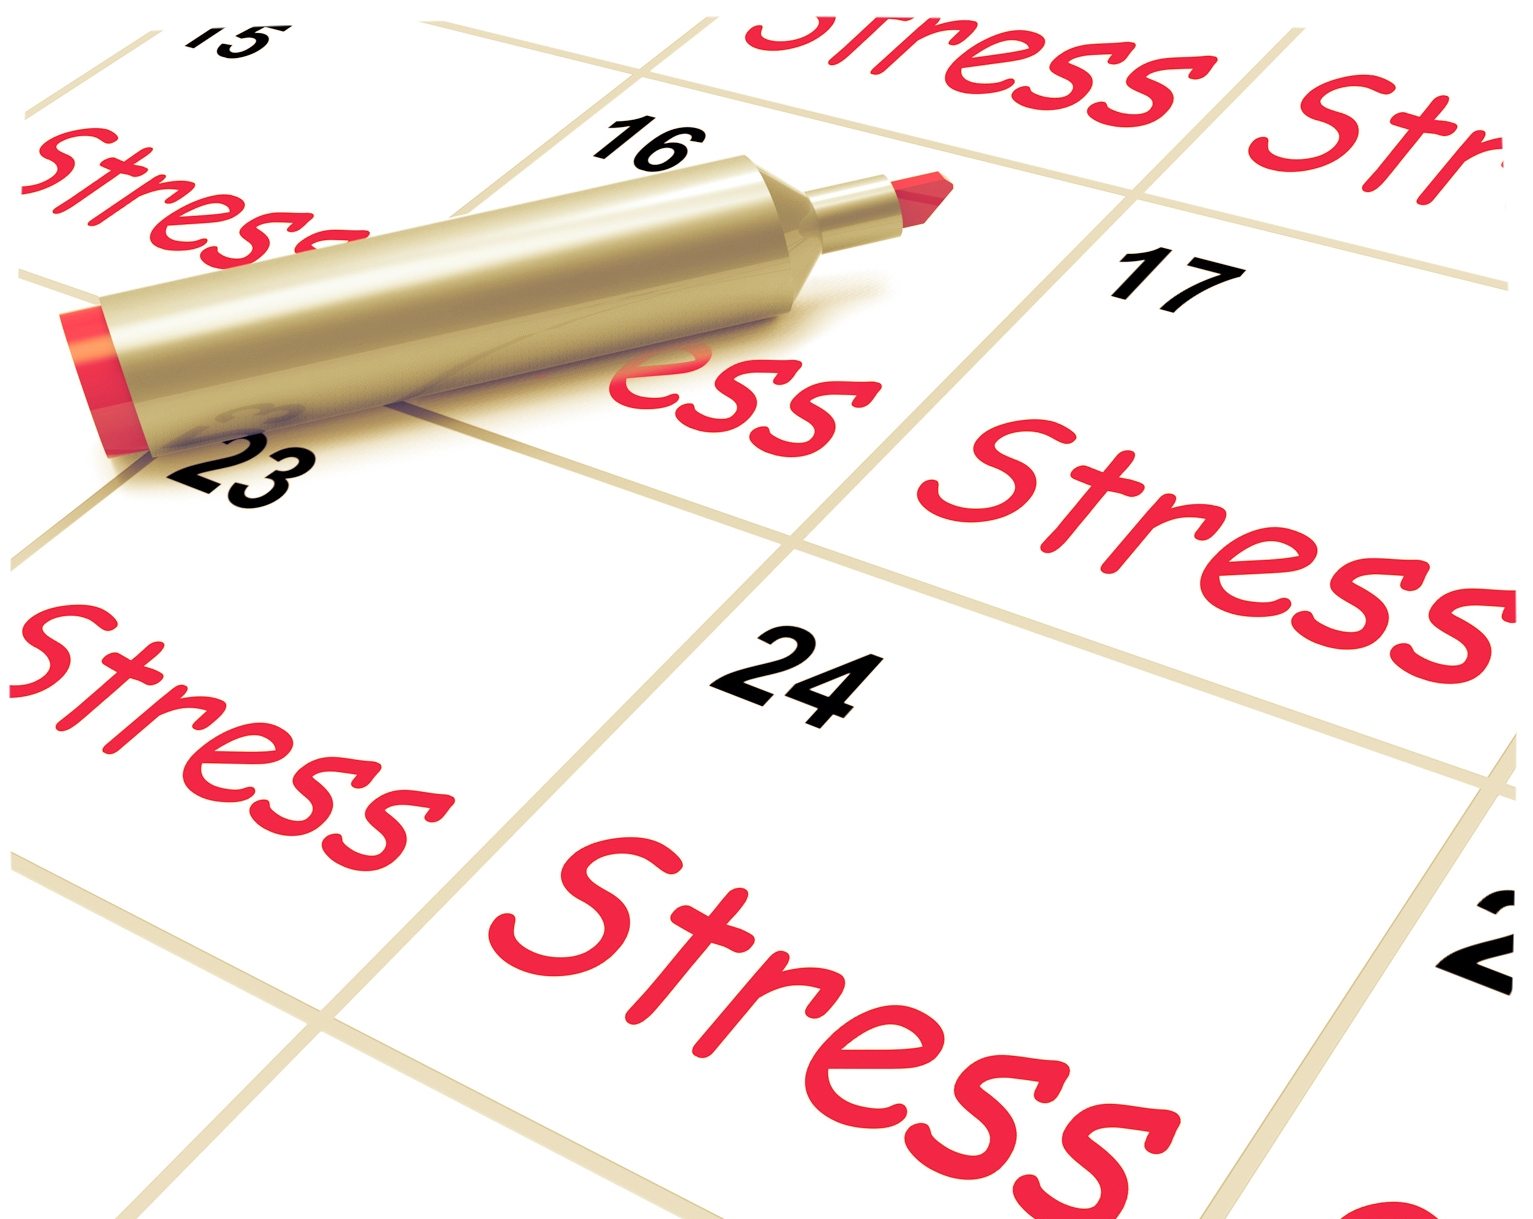 stockvault-stress-calendar-means-pressured-tense-and-anxious225368.jpg